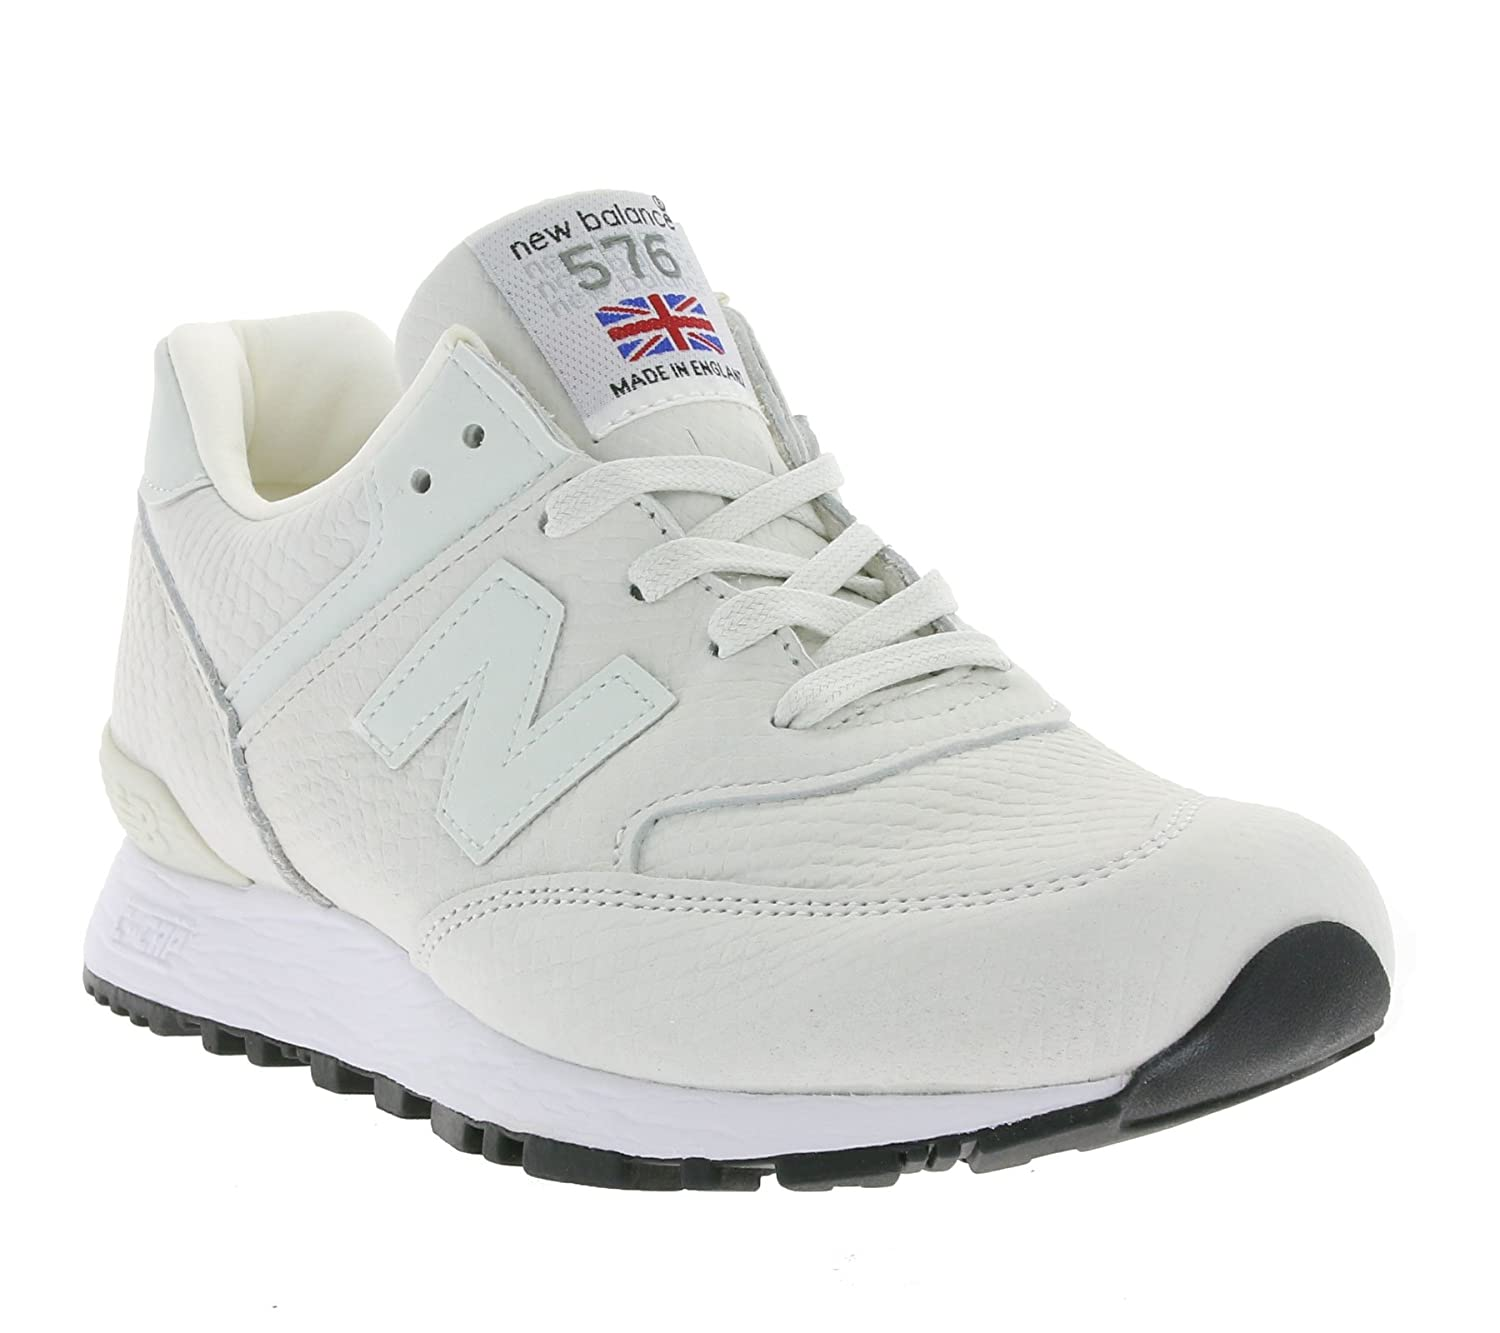 free shipping 71c9b 9bdfc New Balance 576 Women's Real Leather Sneaker White W576NRW